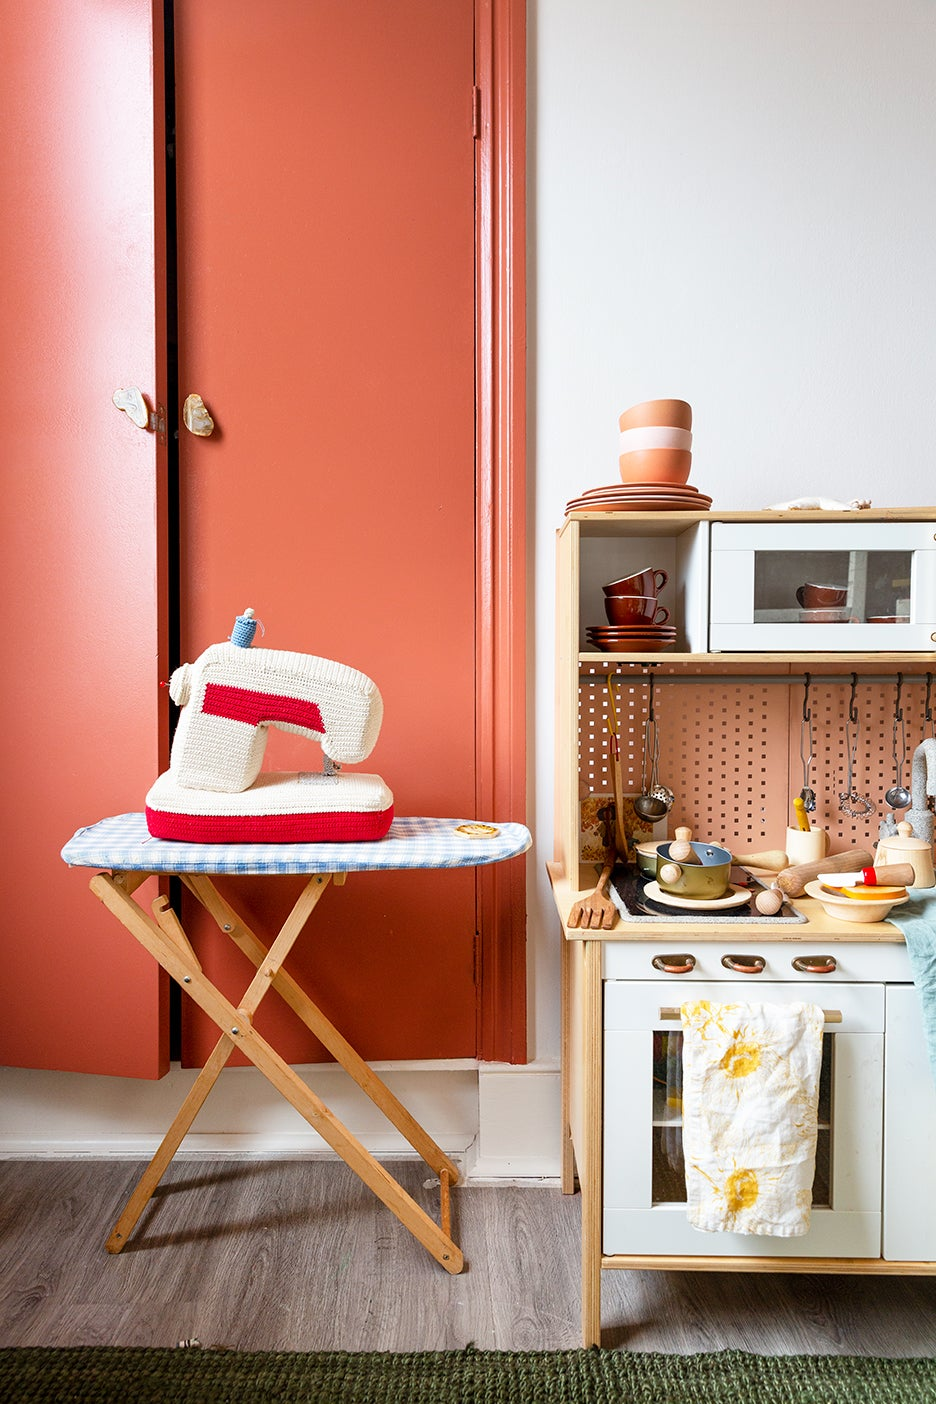 play ironing board and kitchen